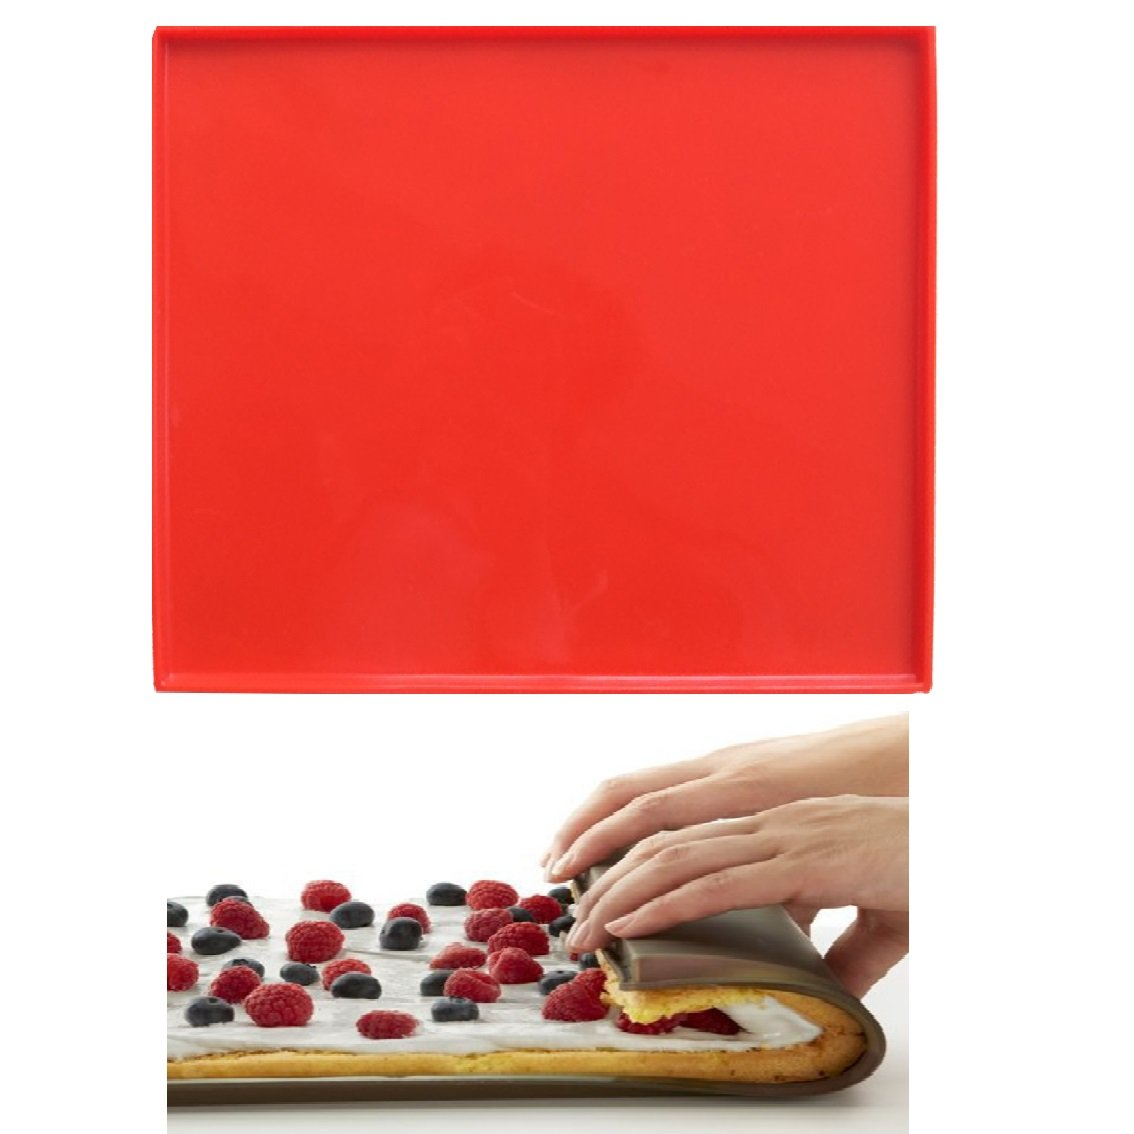 Swiss Roll Cake Mat Flexible Baking Tray Silicone Pizza Cookies Mold Silicone Baking Mat Pizza Pan Pastry Pad L-12inch W-11inch Mity Rain